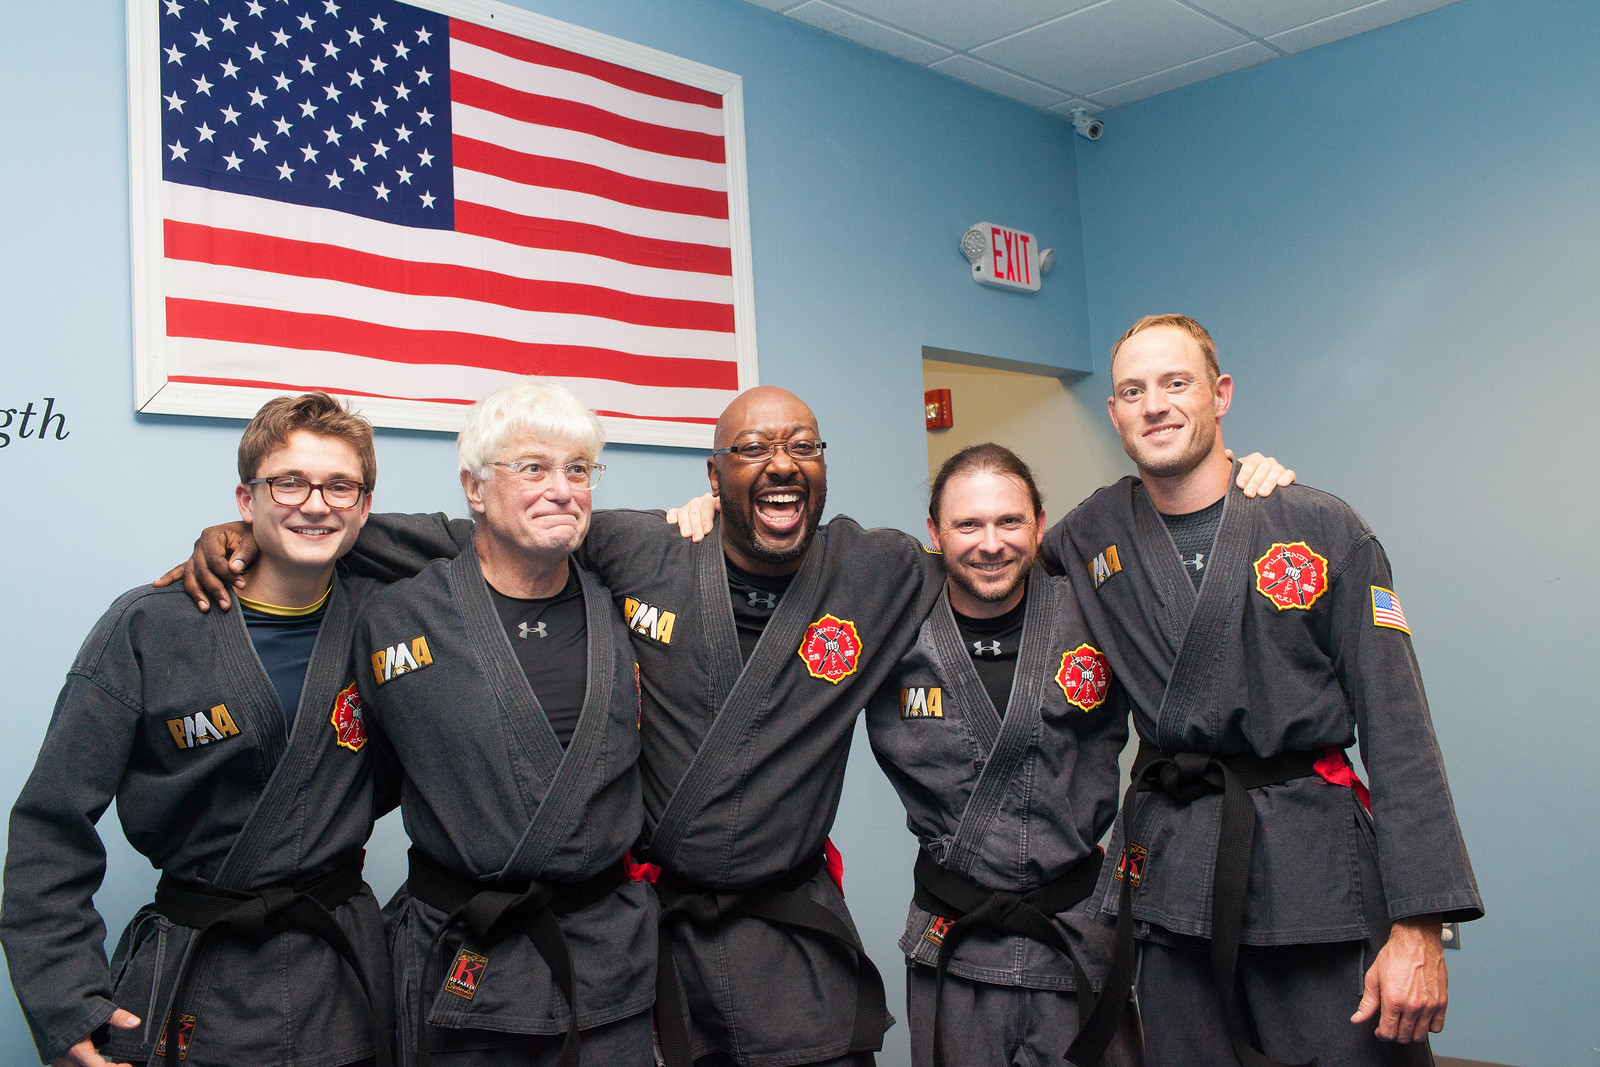 Isaac earned his Black Belt in September alongside 4 other PMA students - the largest group of Black Belts to test together!